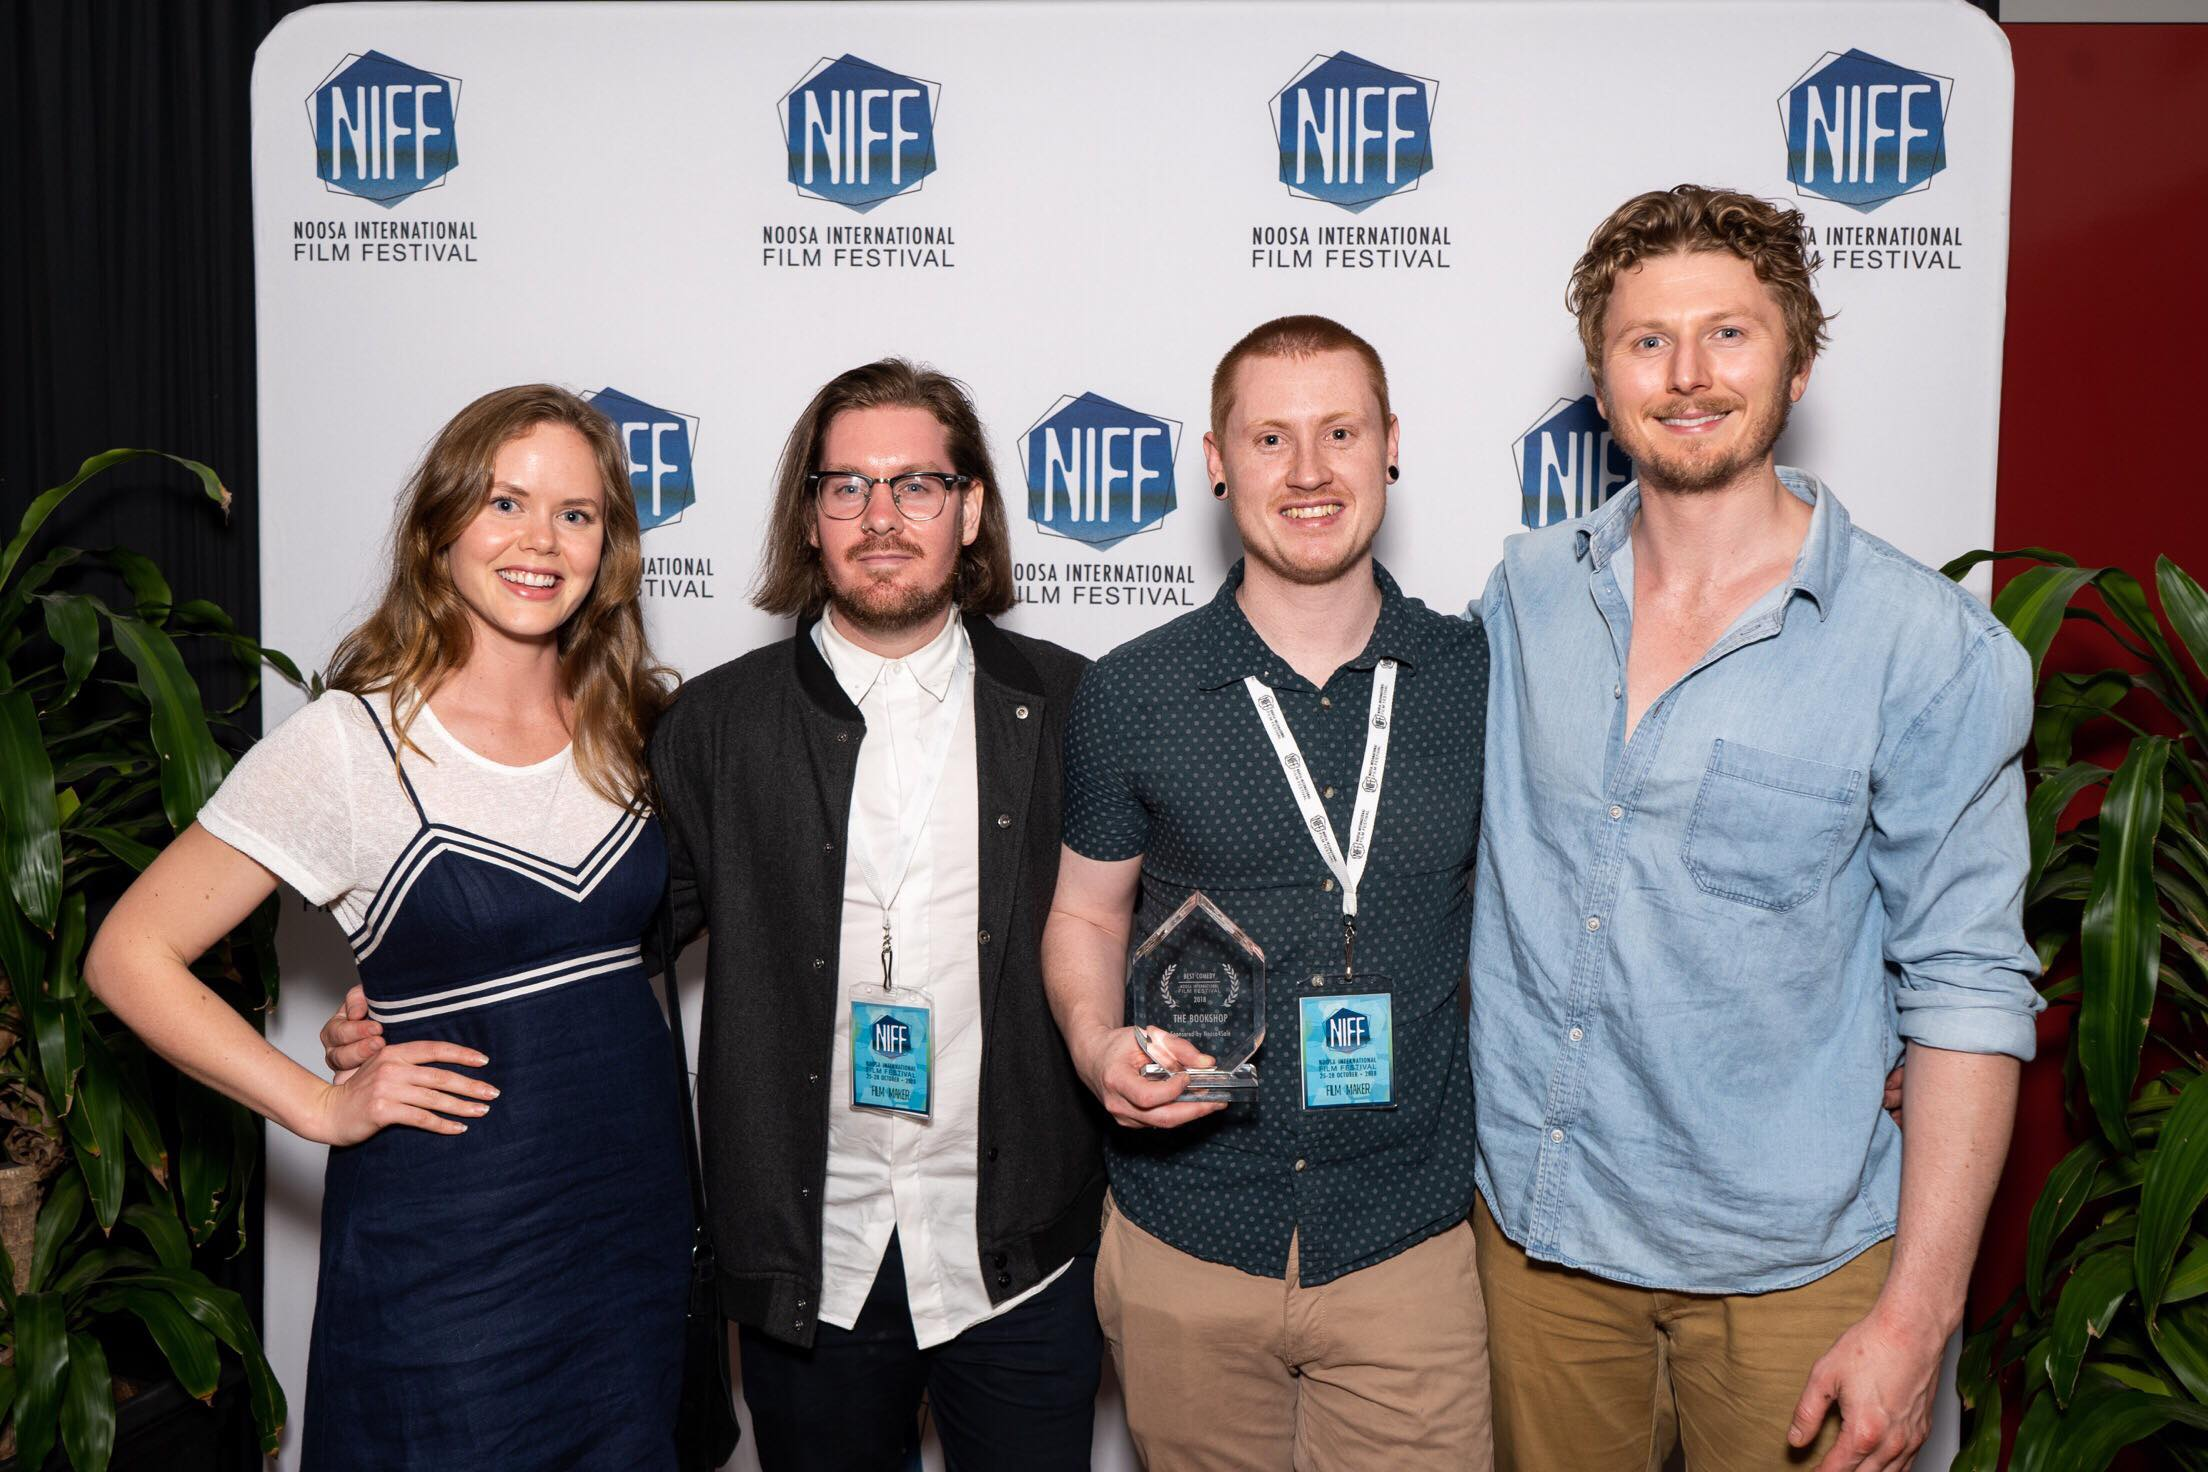 Emily Gruhl (Actress), Benjamin Powell (Cinematographer), Ashley Pollard (Writer/Director, Alastair Osment (Actor) at the Noosa International Film Festival after receiving the award for Best Comedy for the The Bookshop.